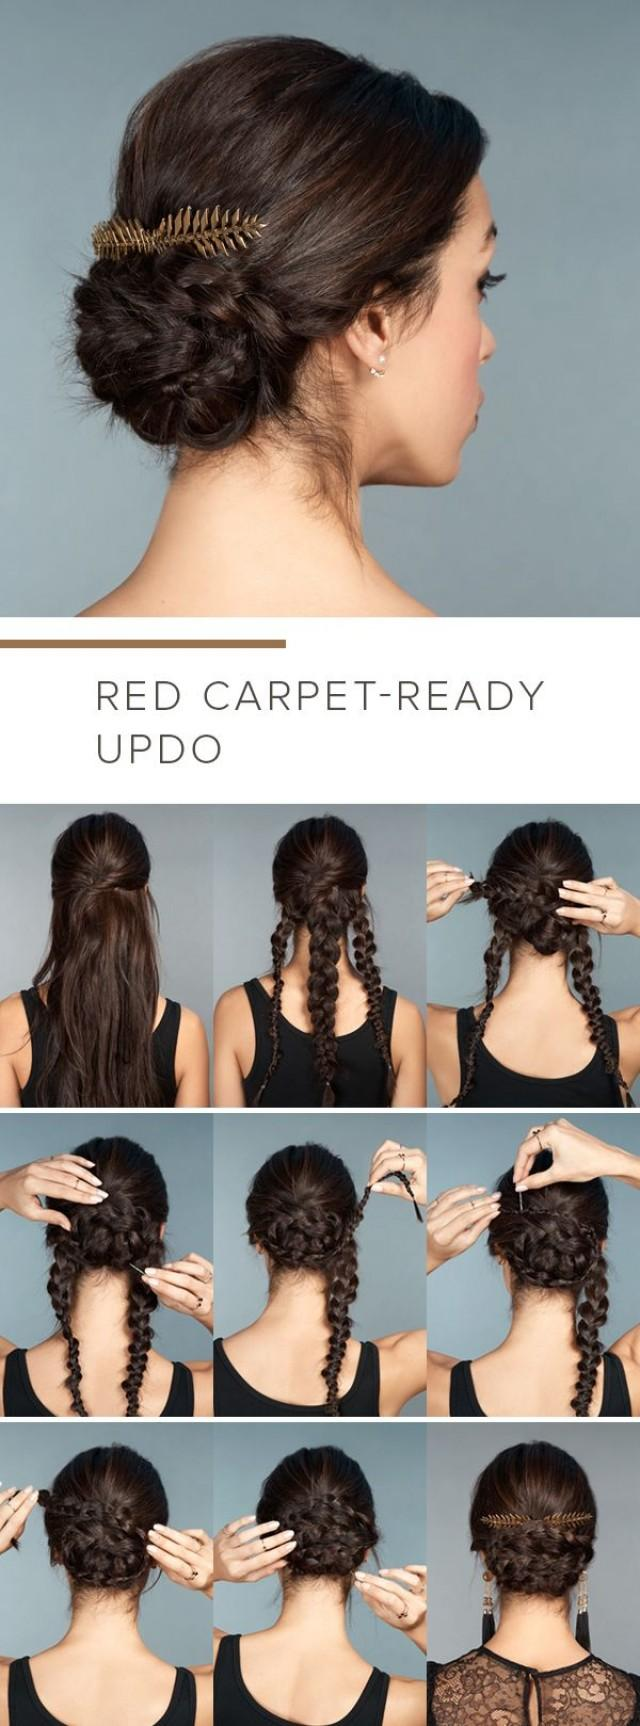 6 Holiday Hair Ideas To Freshen Up Your Look On New Year S Eve 2640417 Weddbook